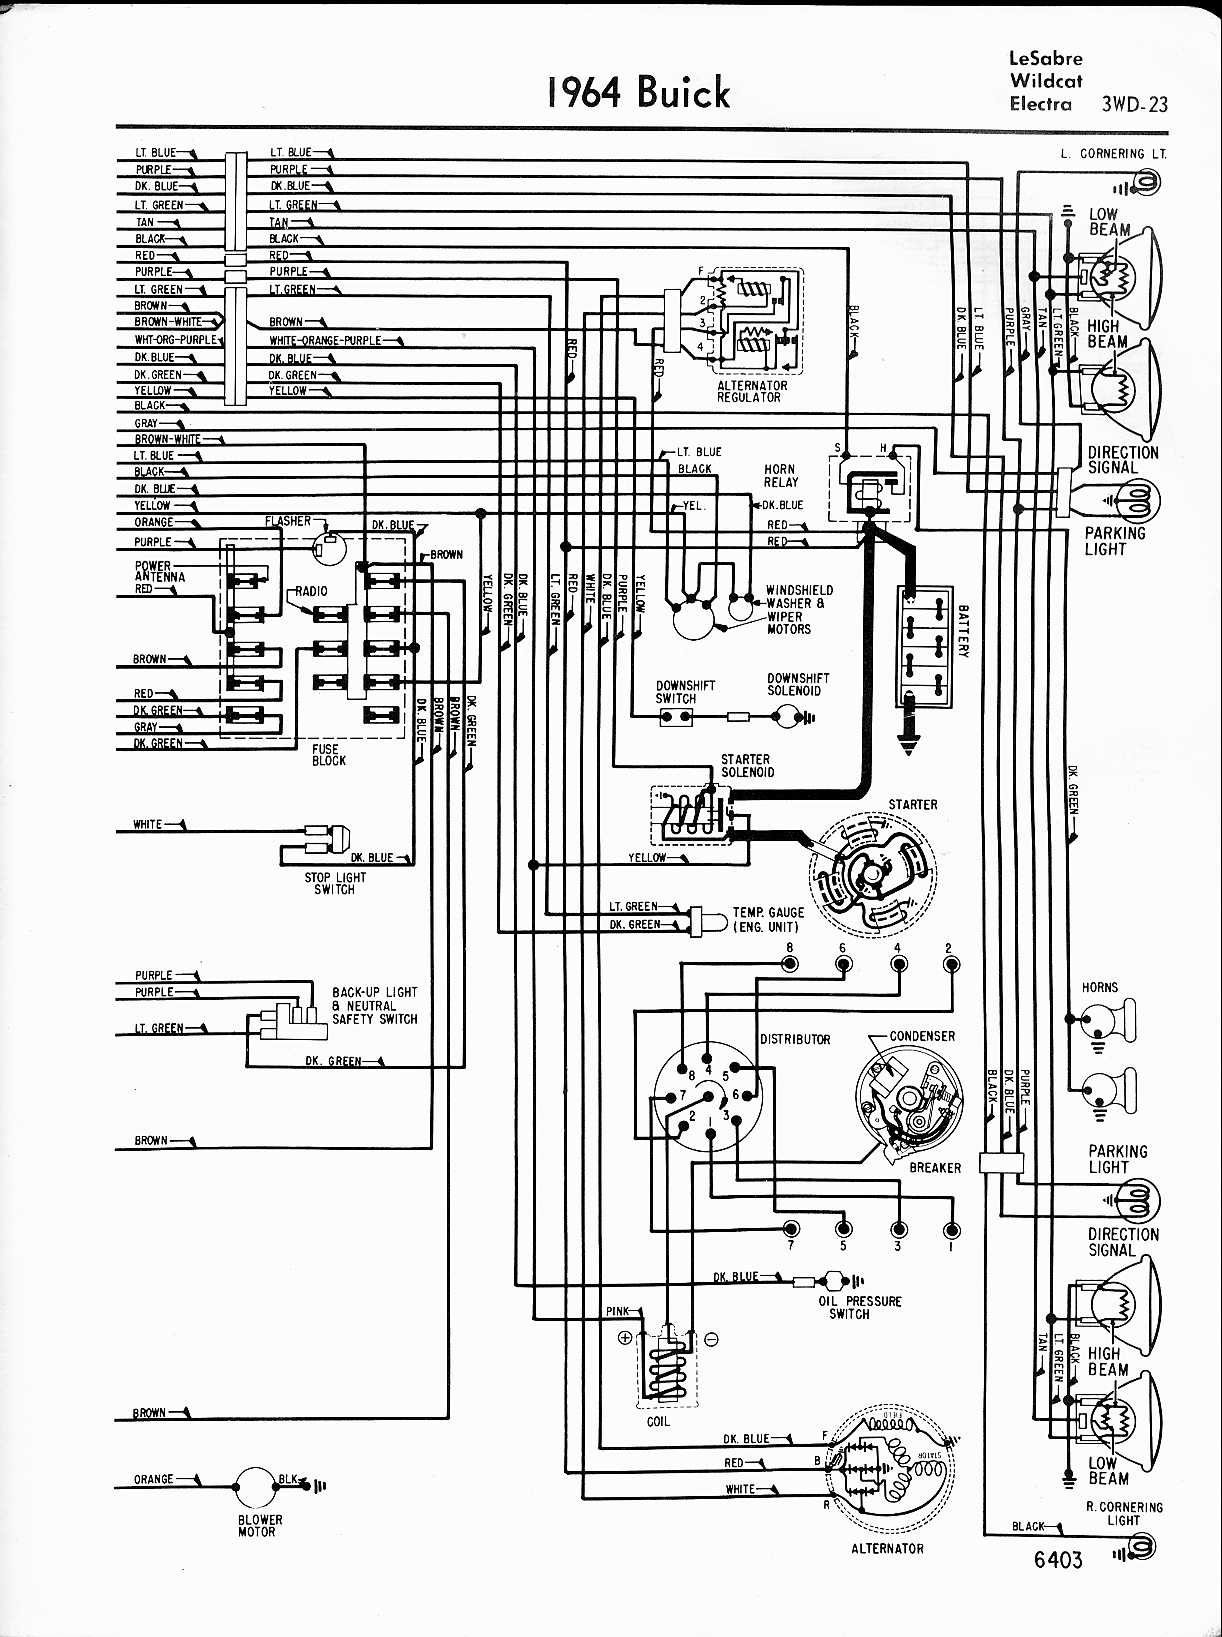 1999 Buick Century Wiring Diagram - Word Wiring Diagram minute -  minute.lalunacrescente.it | Wiring Diagram For 2003 Buick Century |  | La Luna Crescente